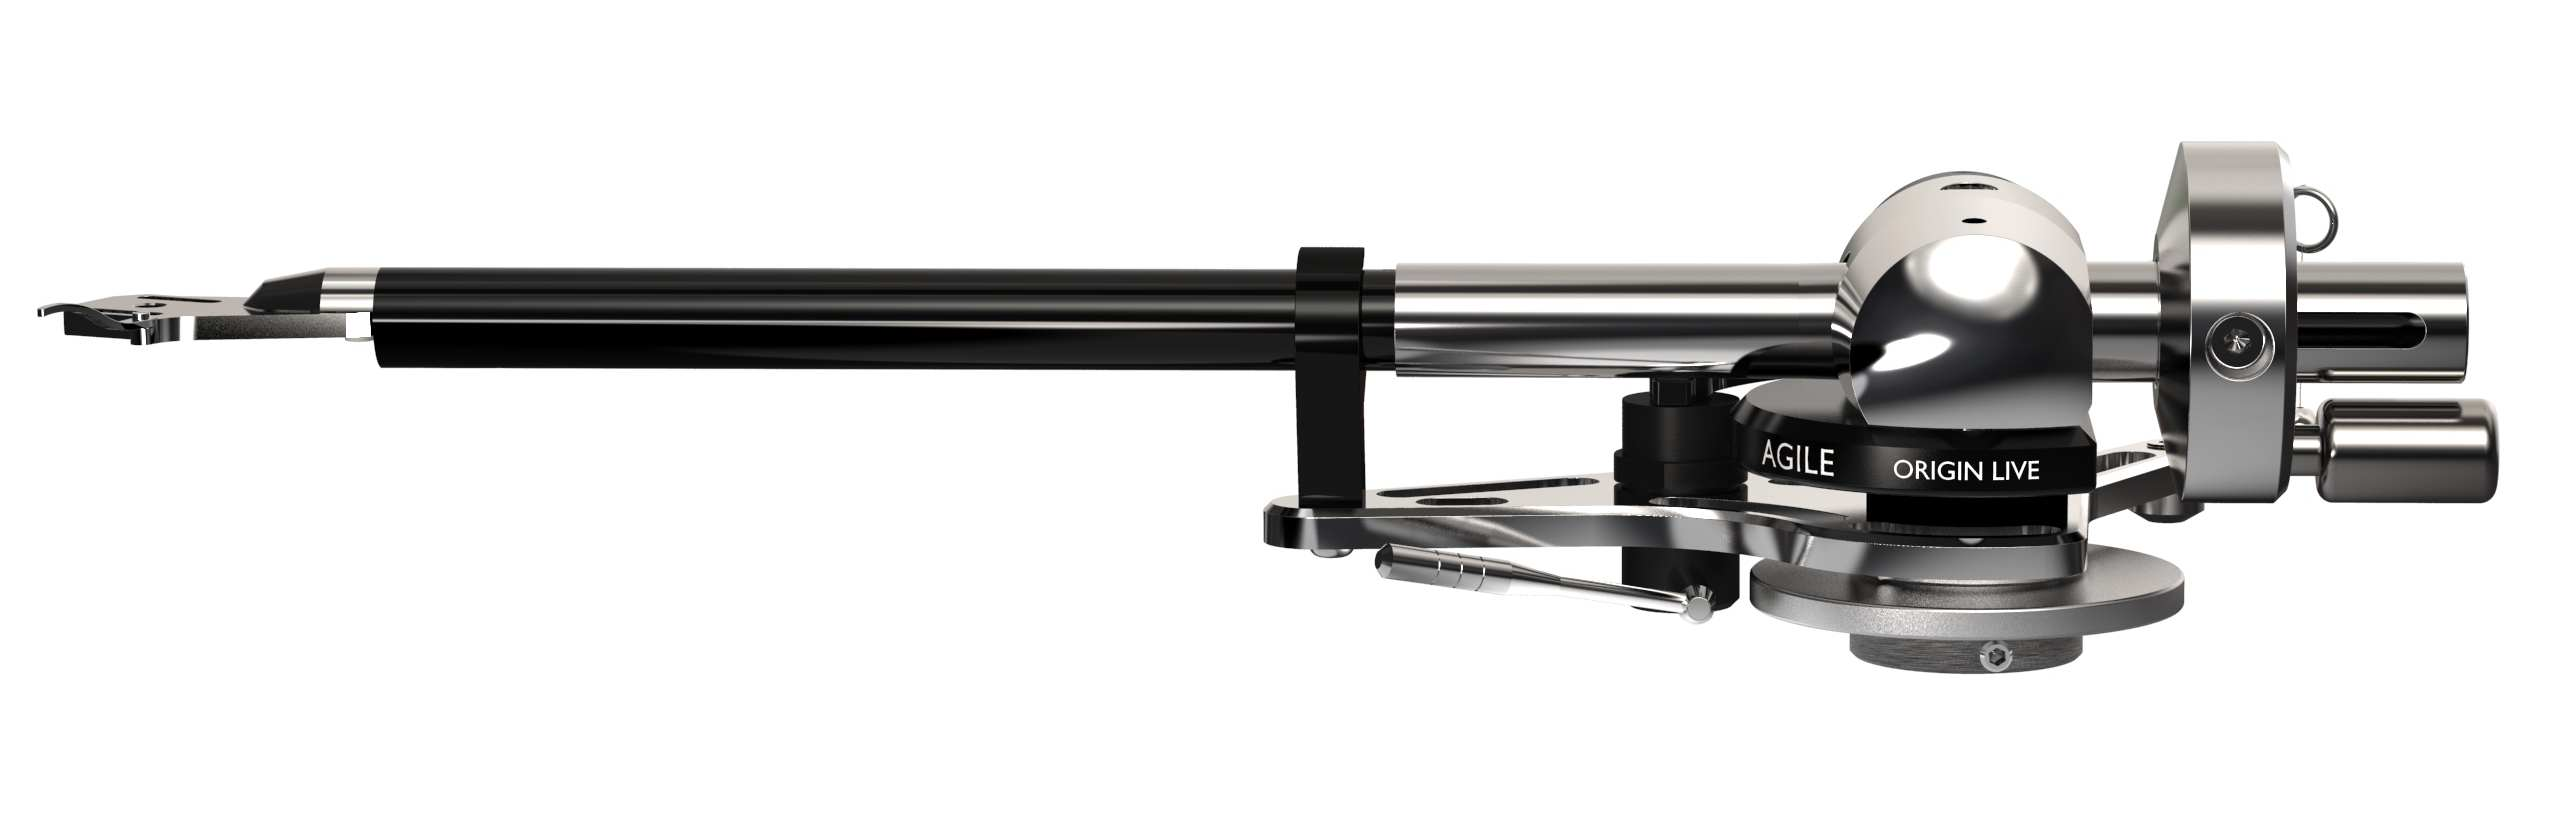 origin live agile high end tonearm left side